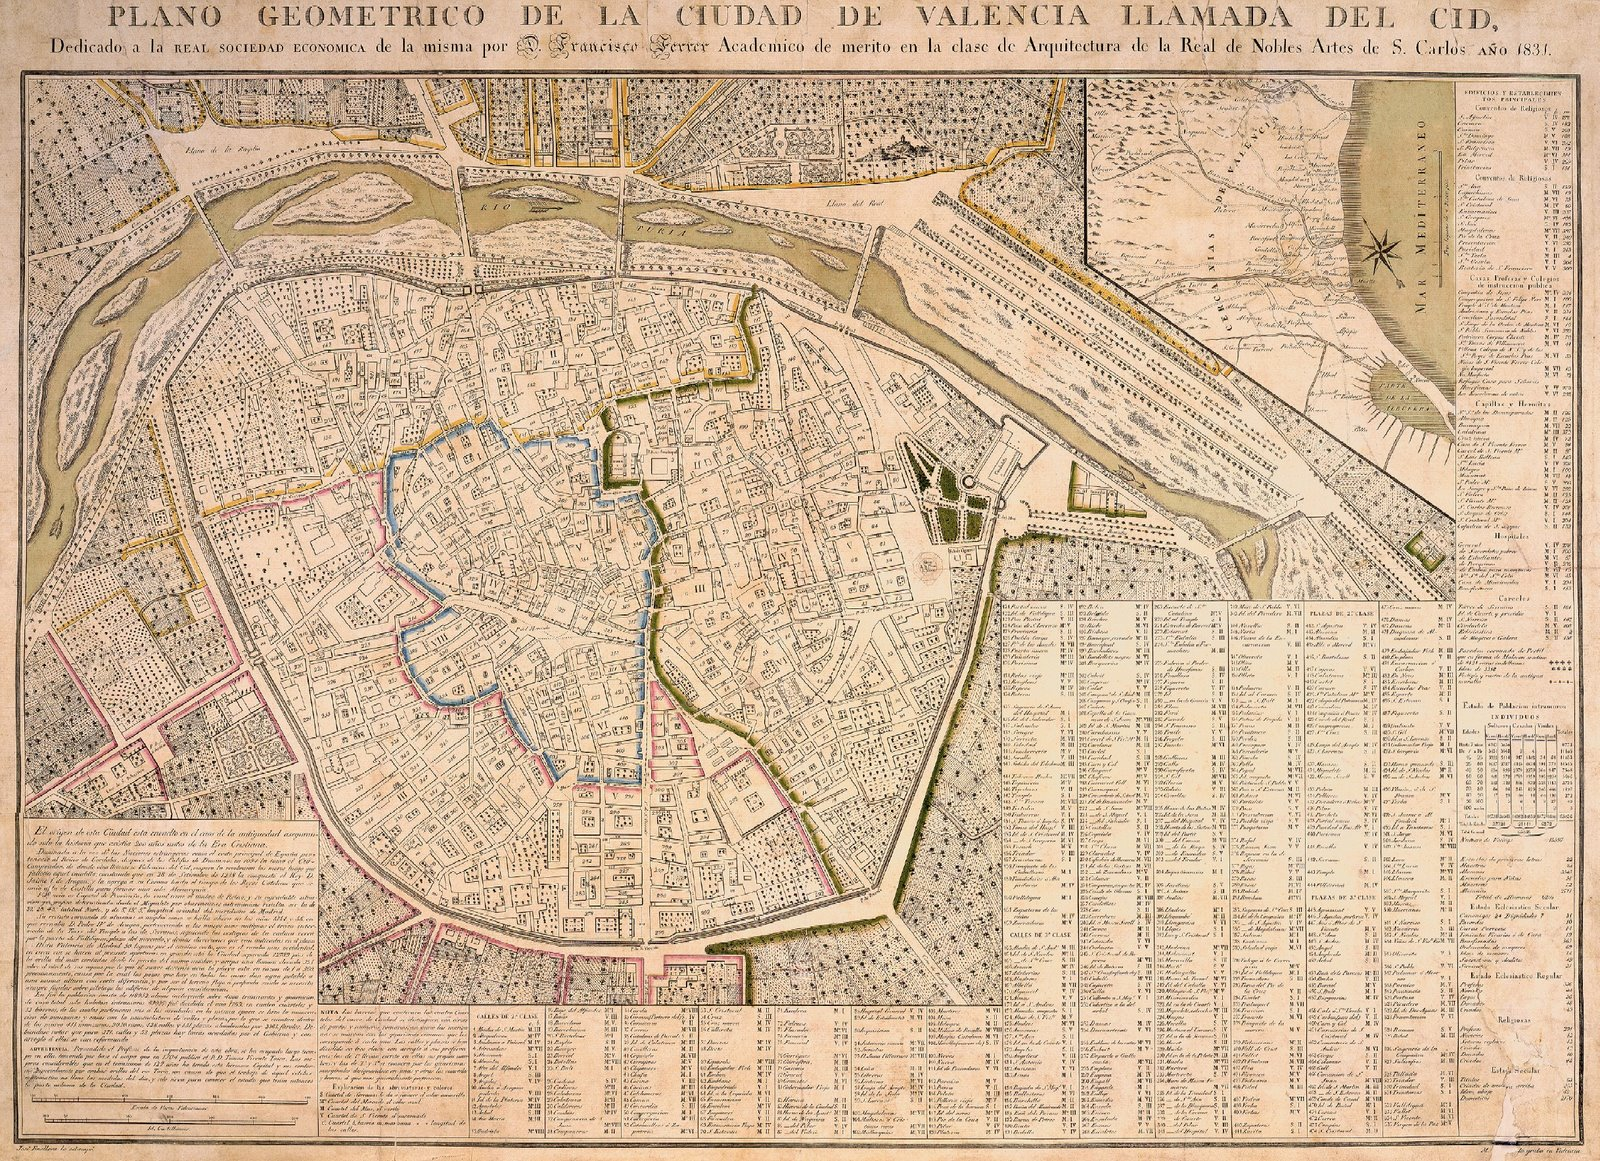 Map of the city of Valencia 1828